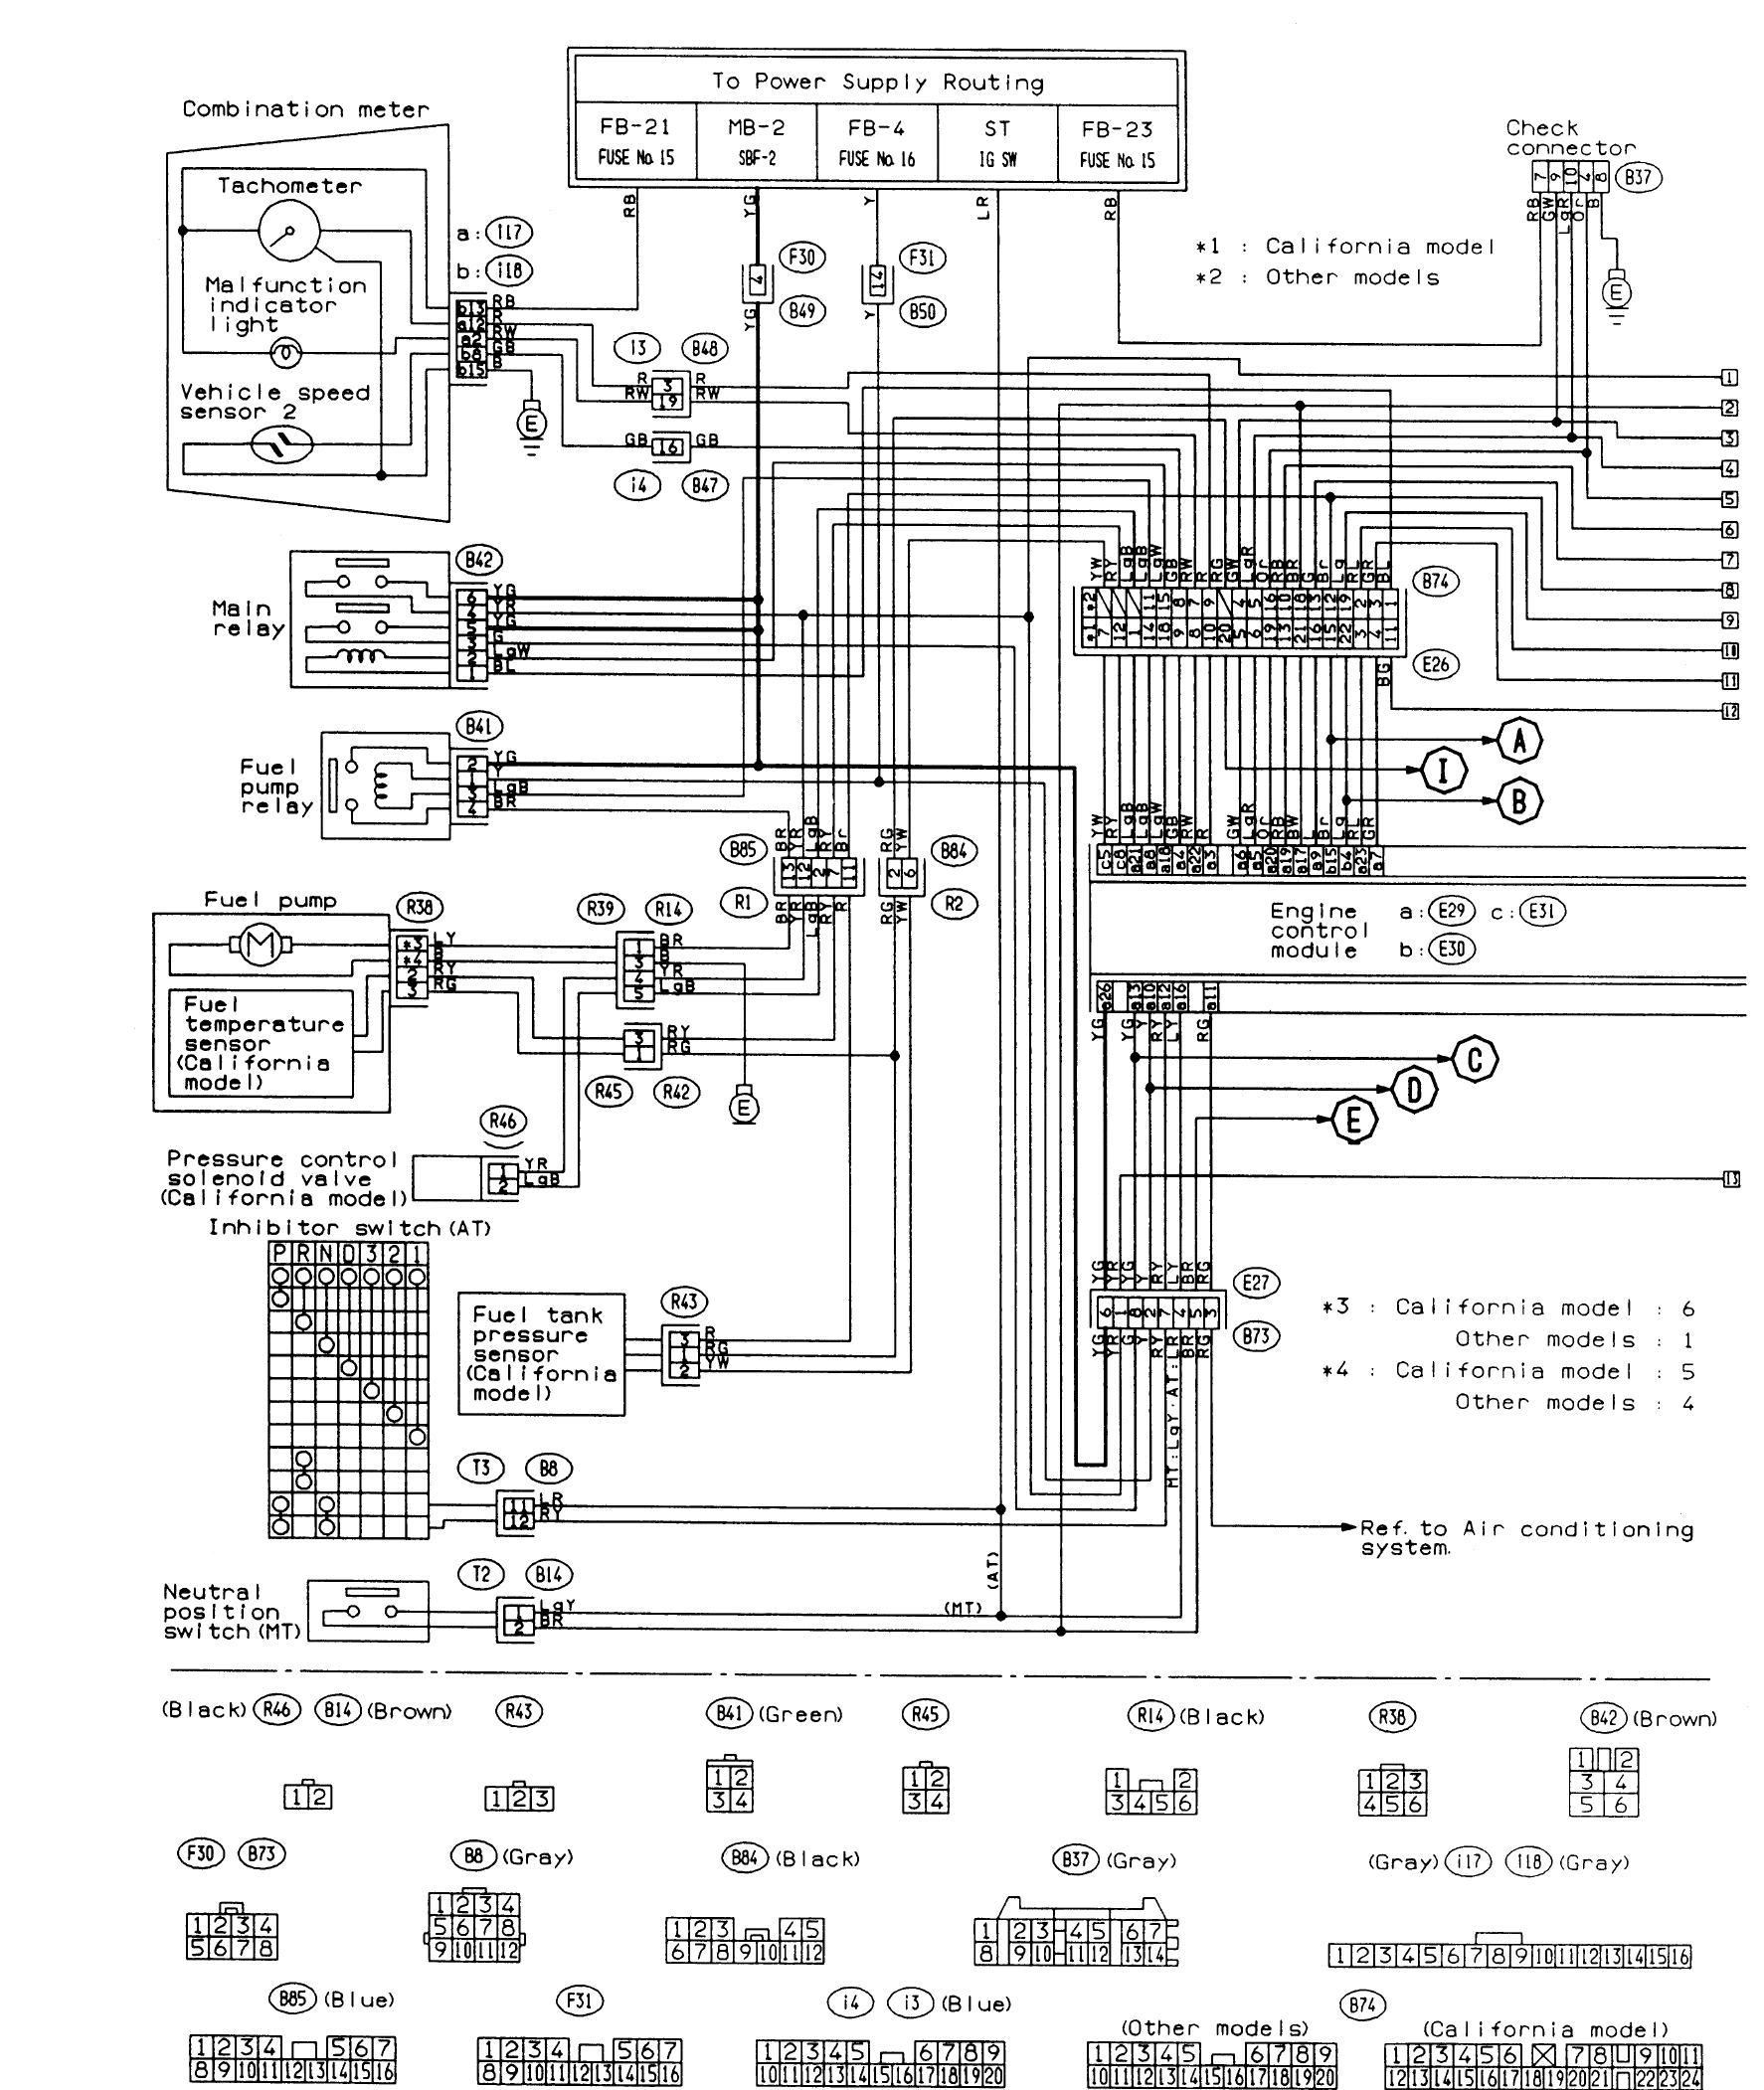 subaru ecu wiring diagram FUSlrCX 1995 subaru impreza wiring diagram electrical schematic of 1993 subaru wiring diagram at soozxer.org